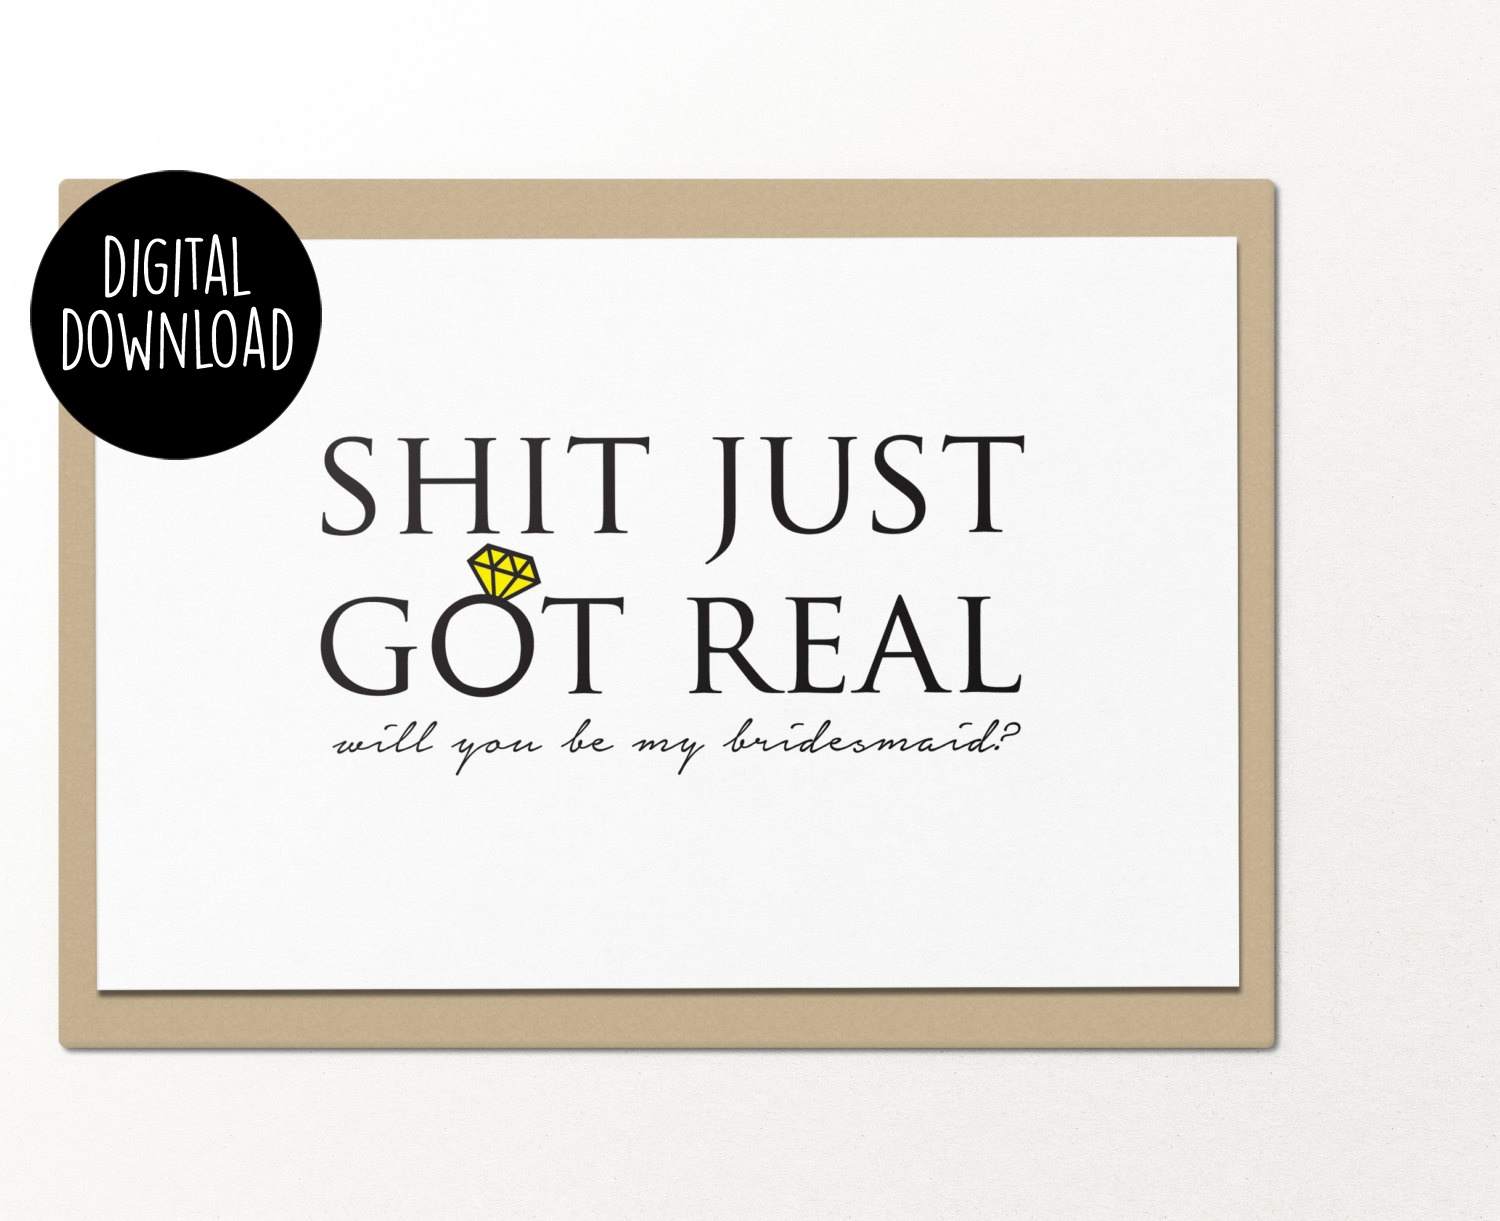 photo about Will You Be My Bridesmaid Printable called Shit simply acquired accurate will oneself be my bridesmaid printable greeting card